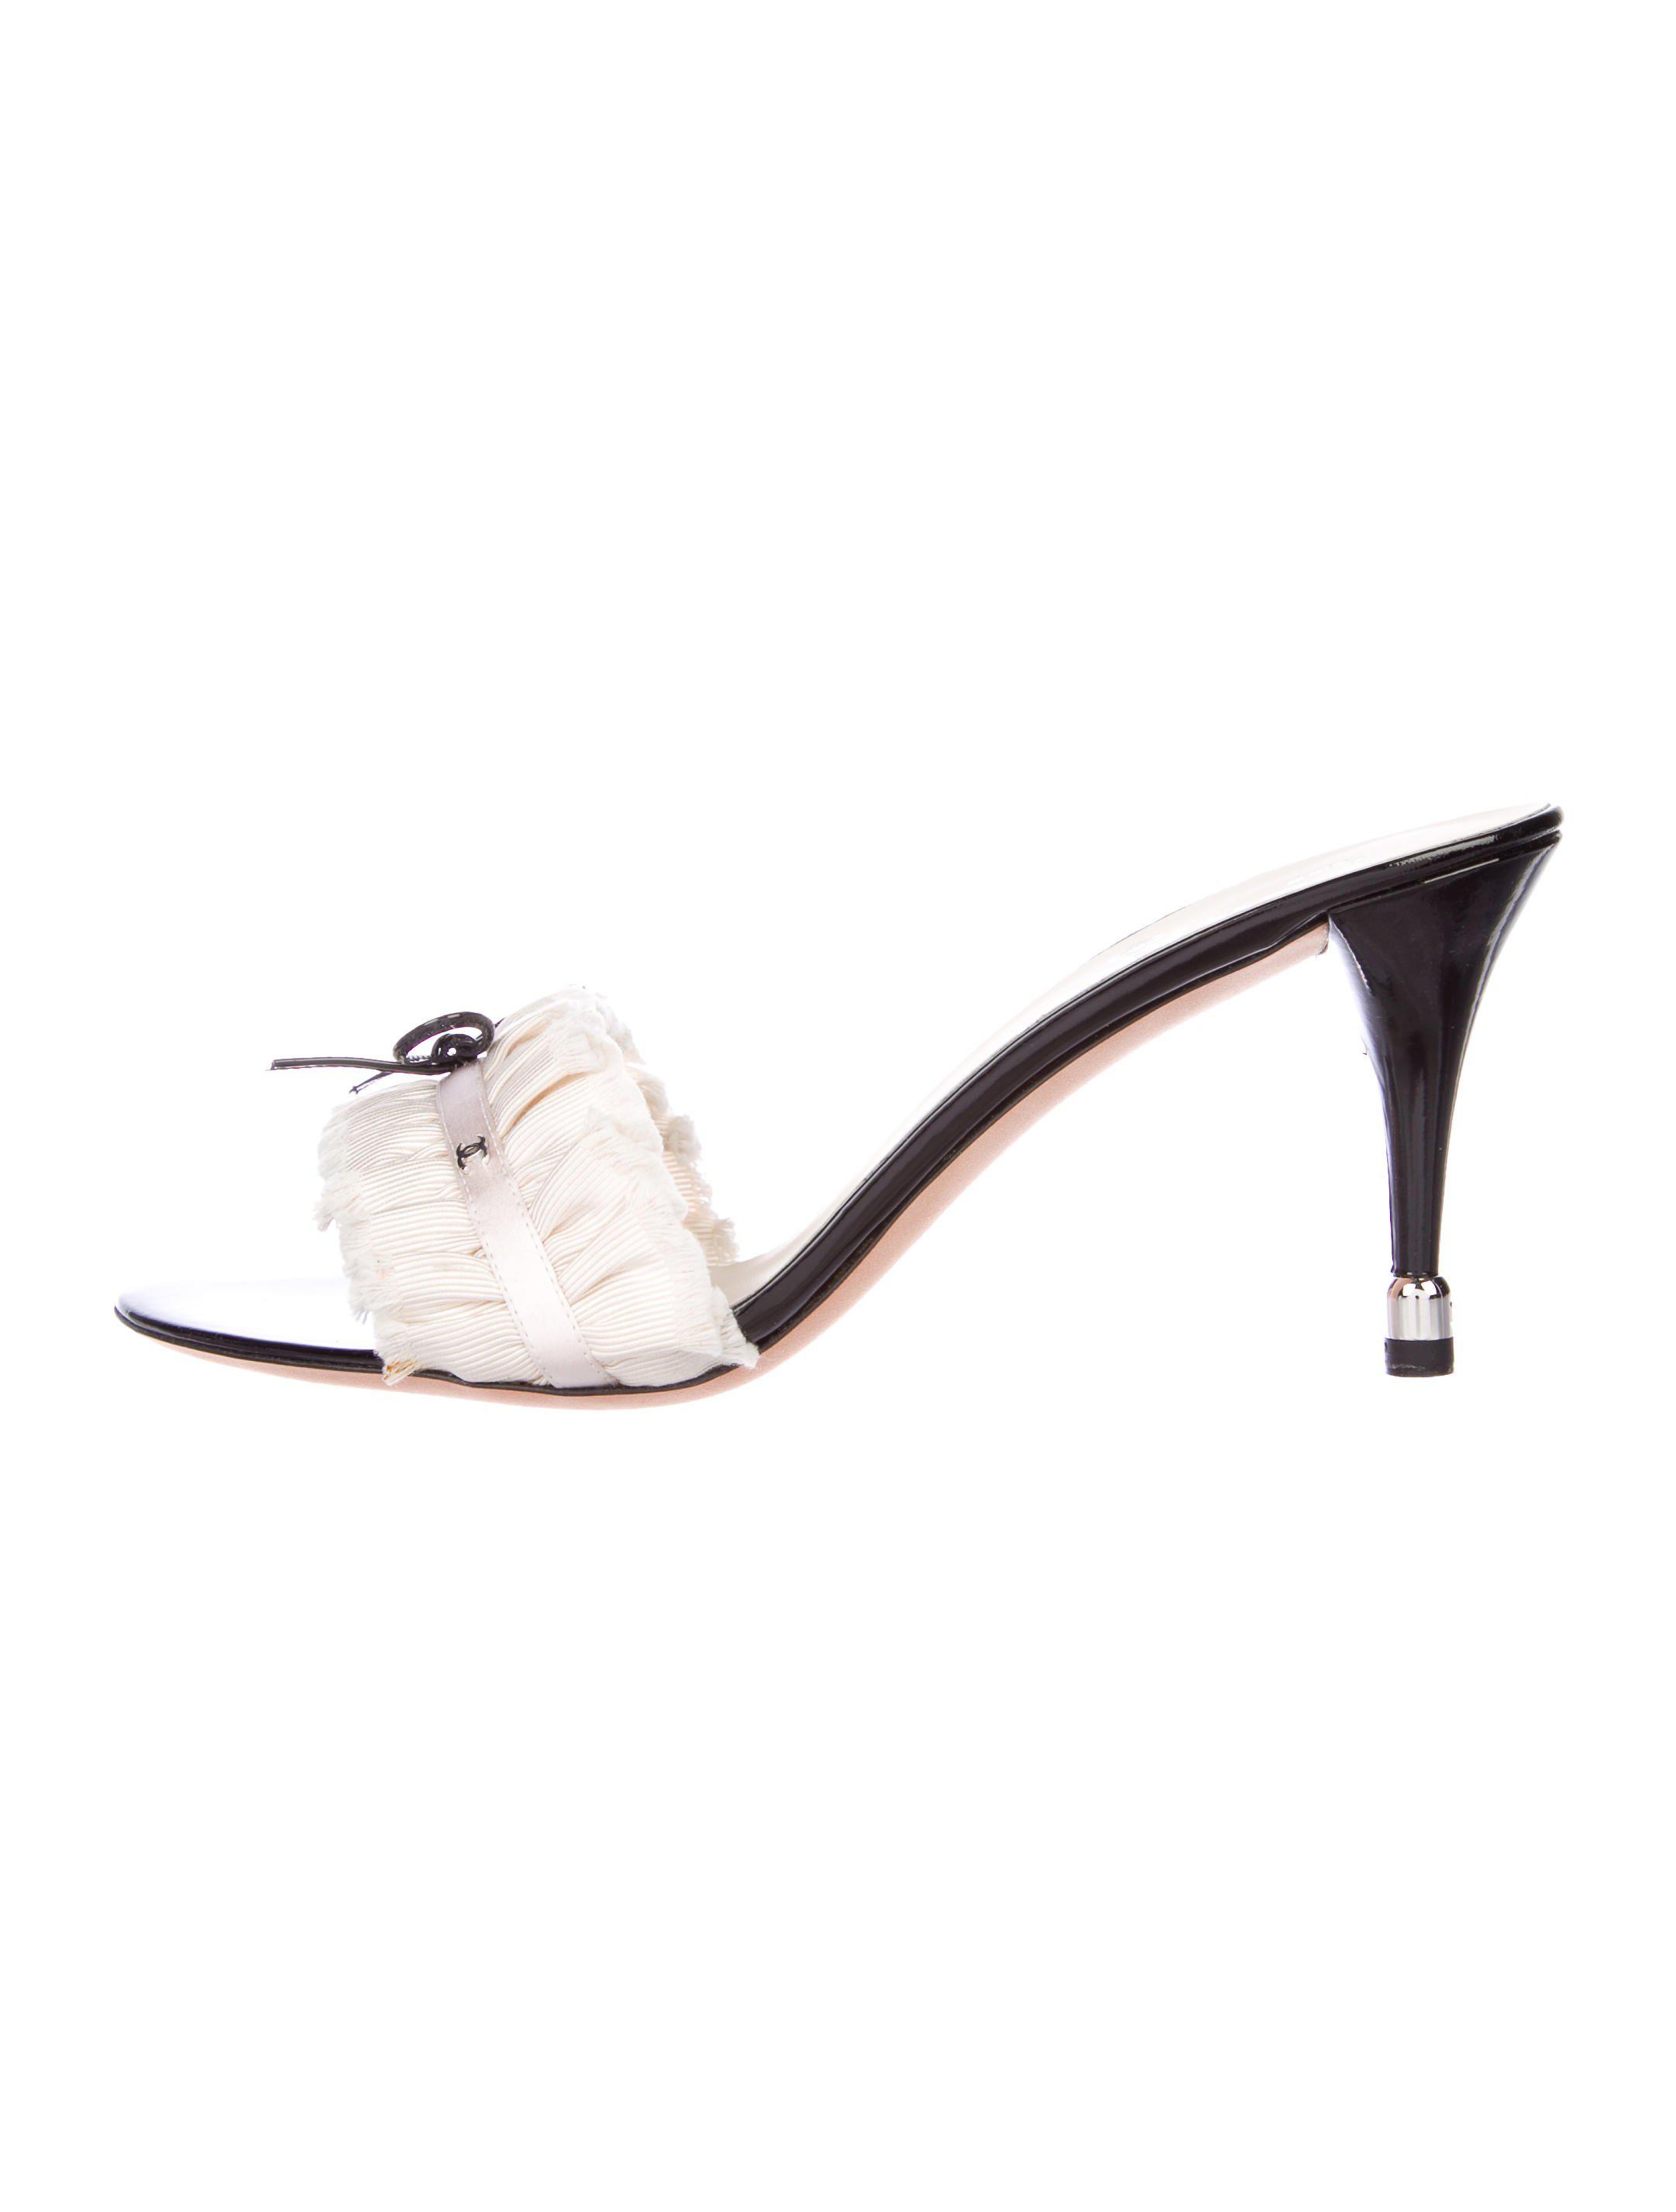 770d574daa4d27 Lyst - Chanel Cc Bow Sandals W  Tags Pink in Metallic